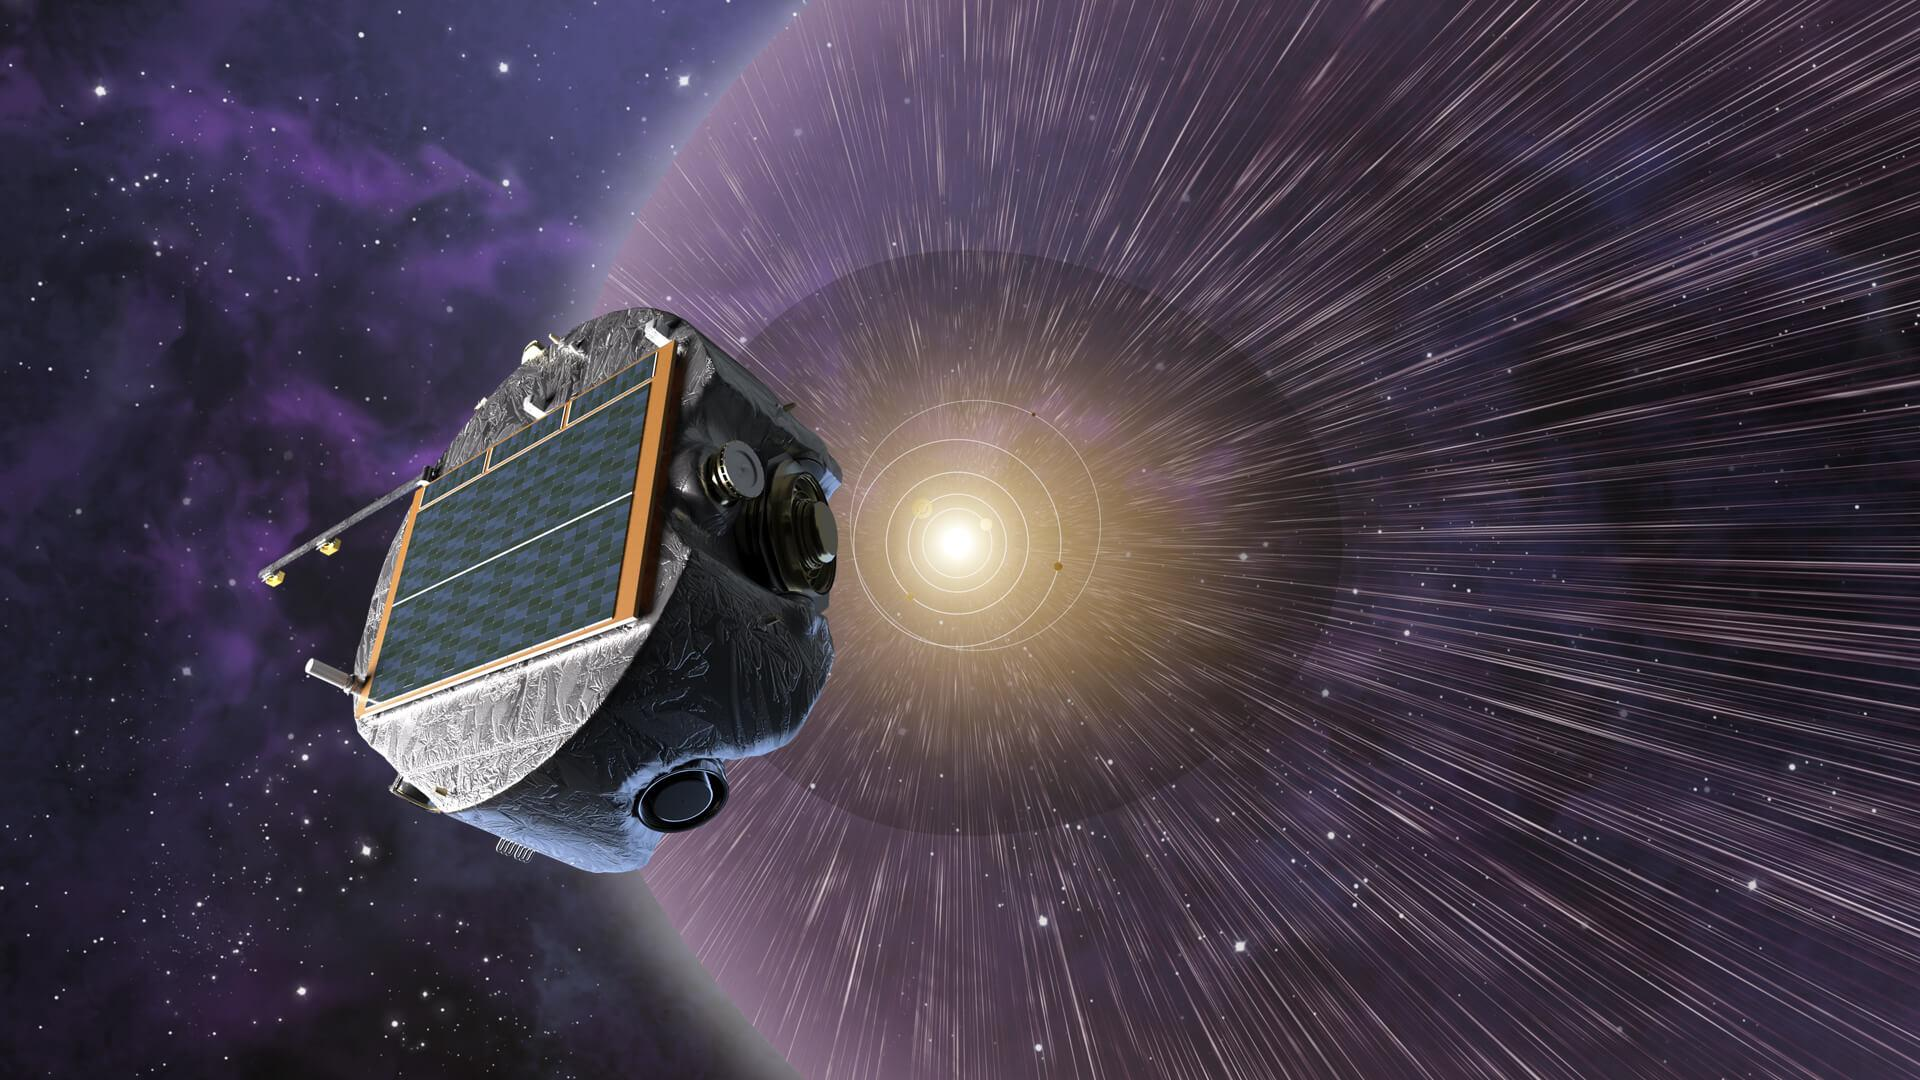 IMAP spacecraft observing the solar wind at the edge of the heliosphere